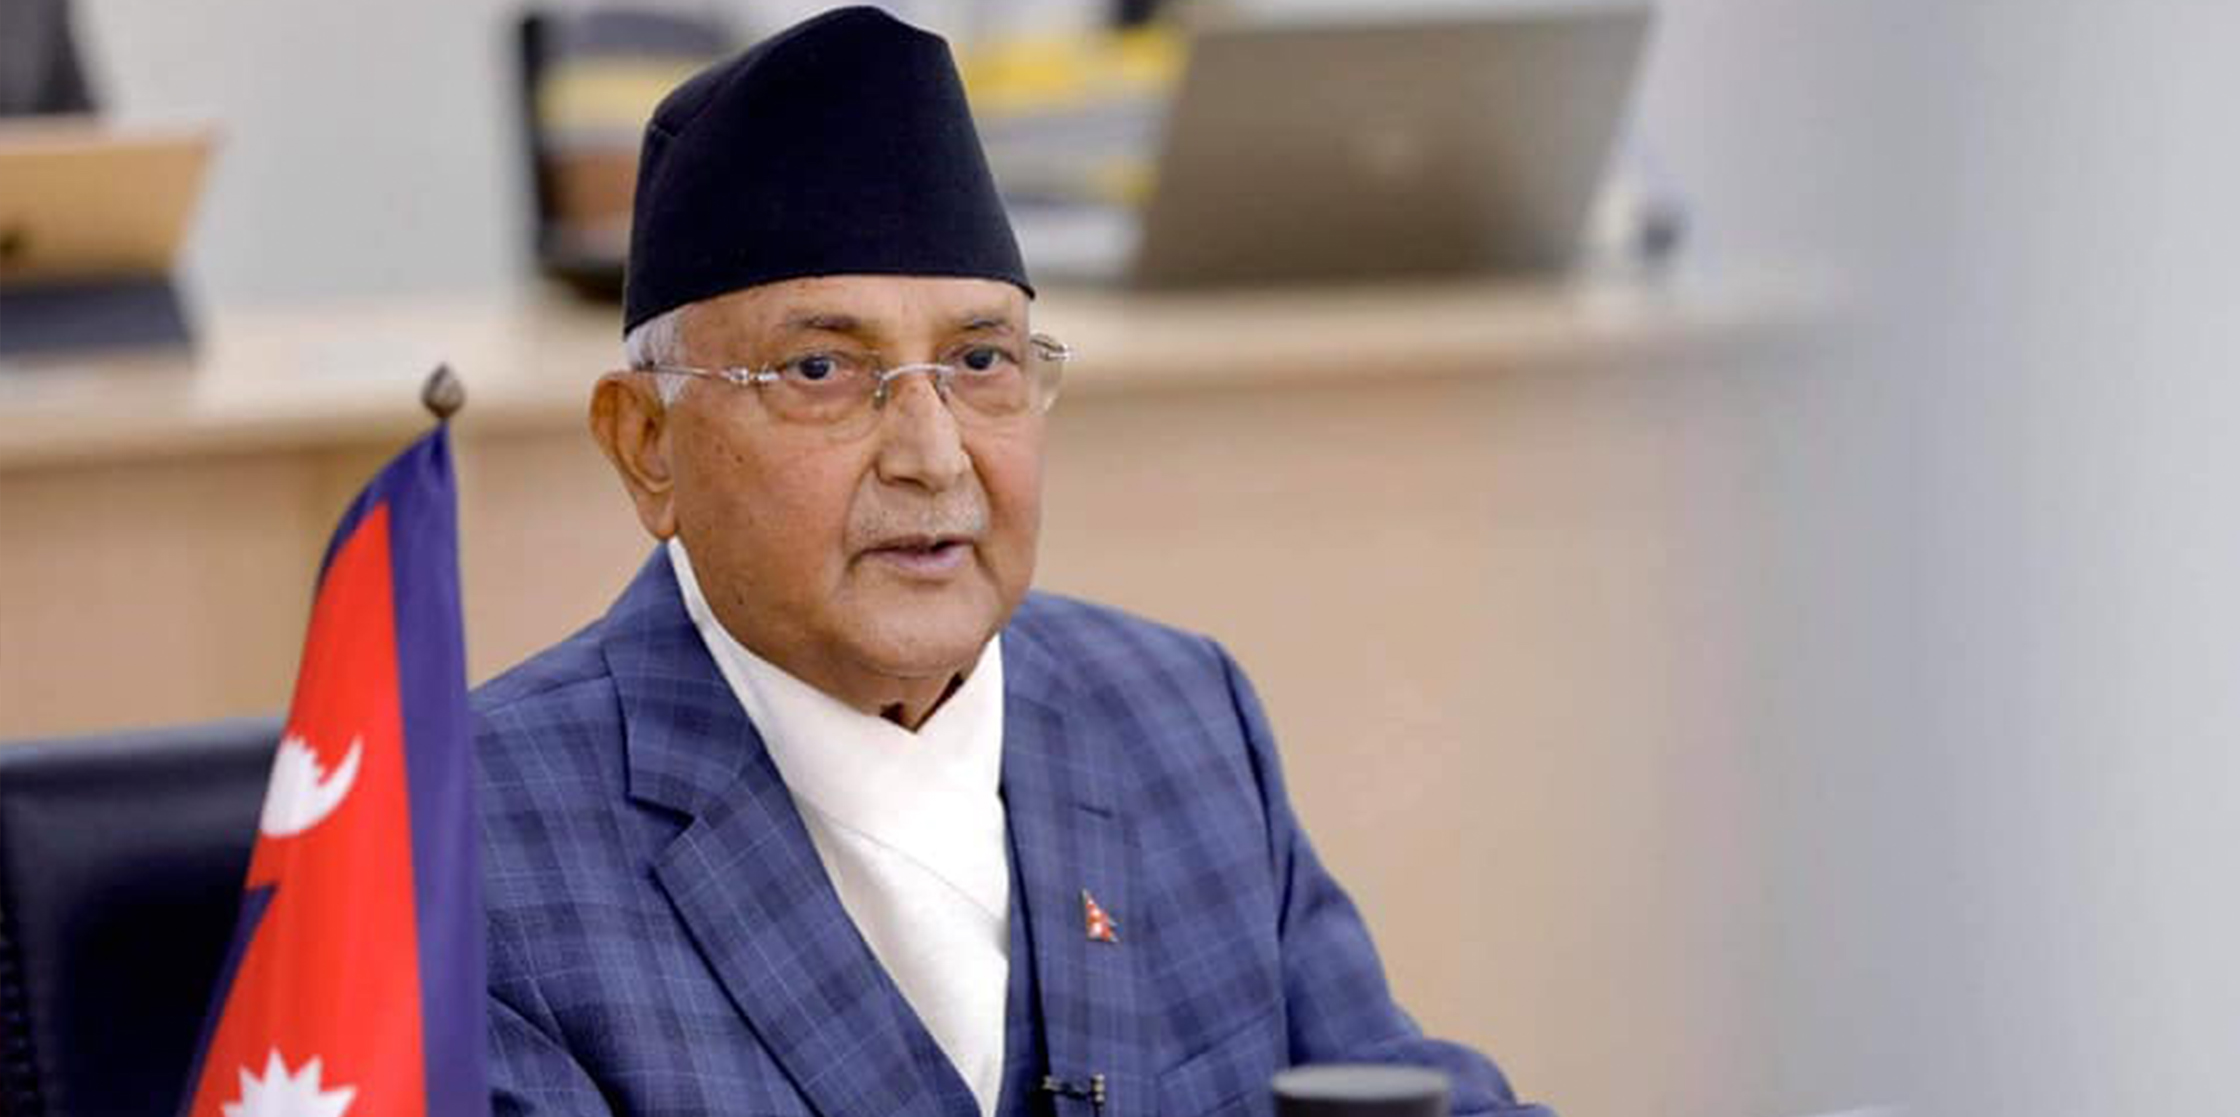 PM Oli directs authorities to bring master plan for overall development of education